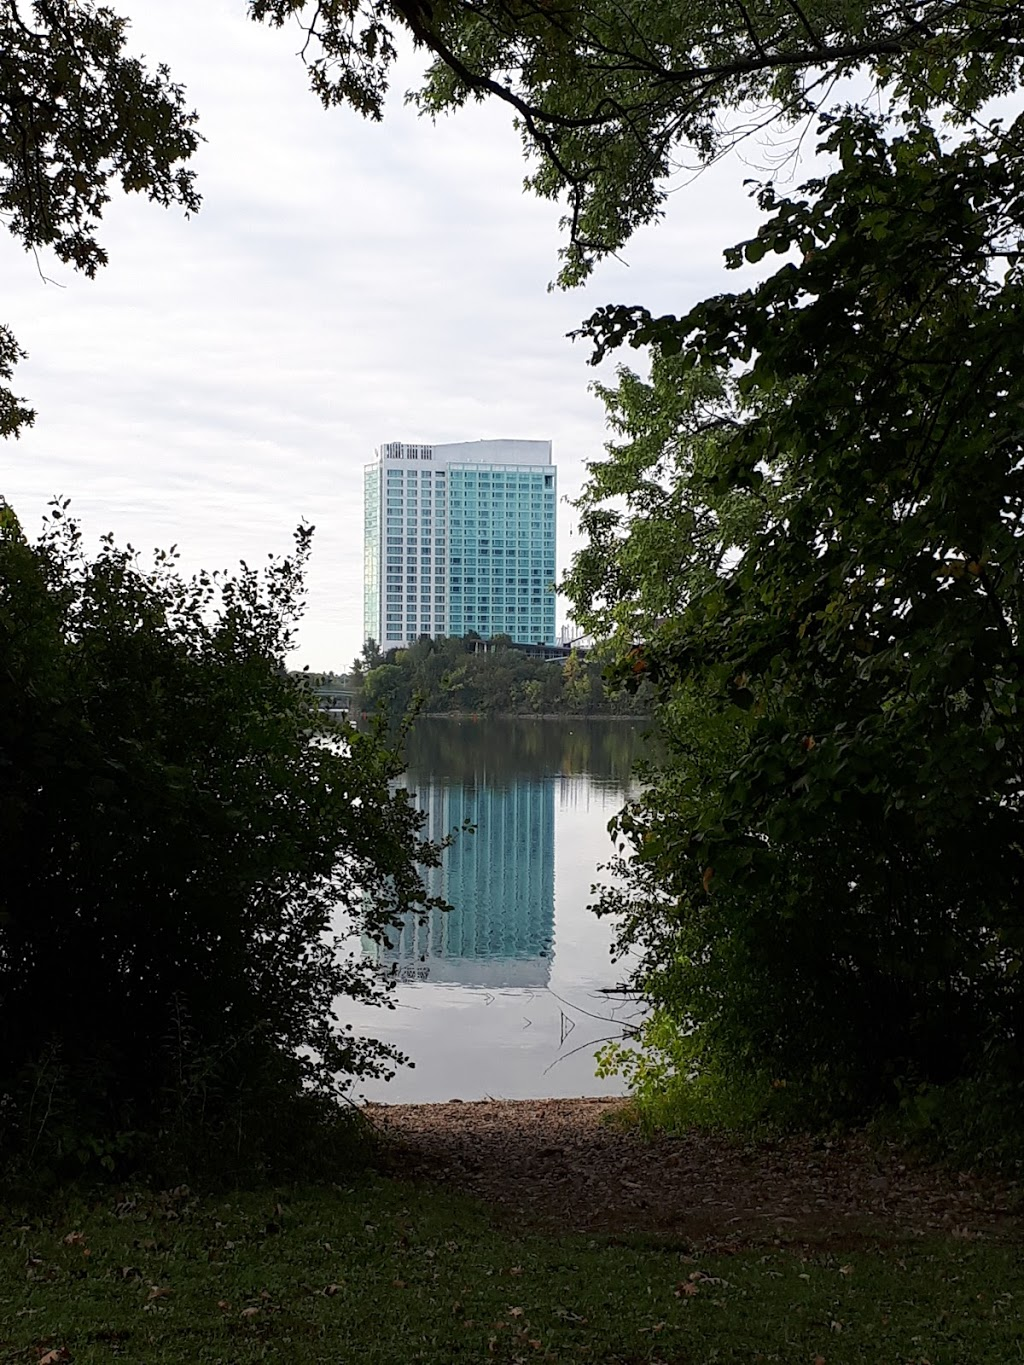 Lac Leamy - stationnement\parking | parking | Sentier du Lac-Leamy, Hull, QC J8Y, Canada